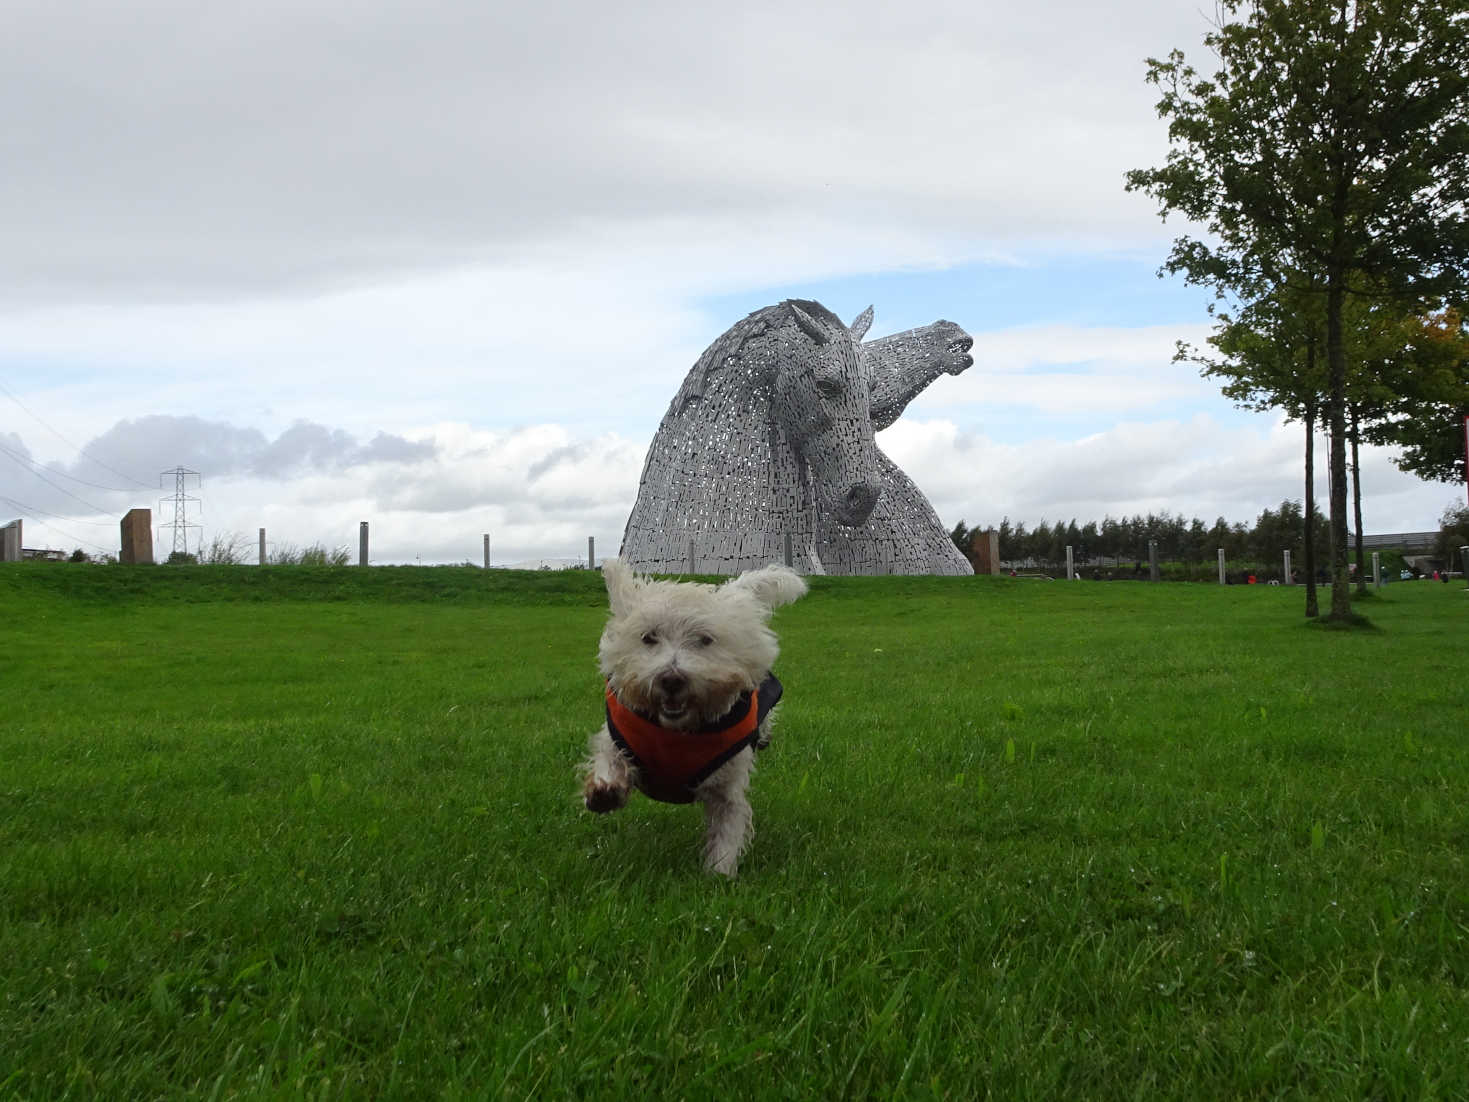 poppysocks playing at the kelpies